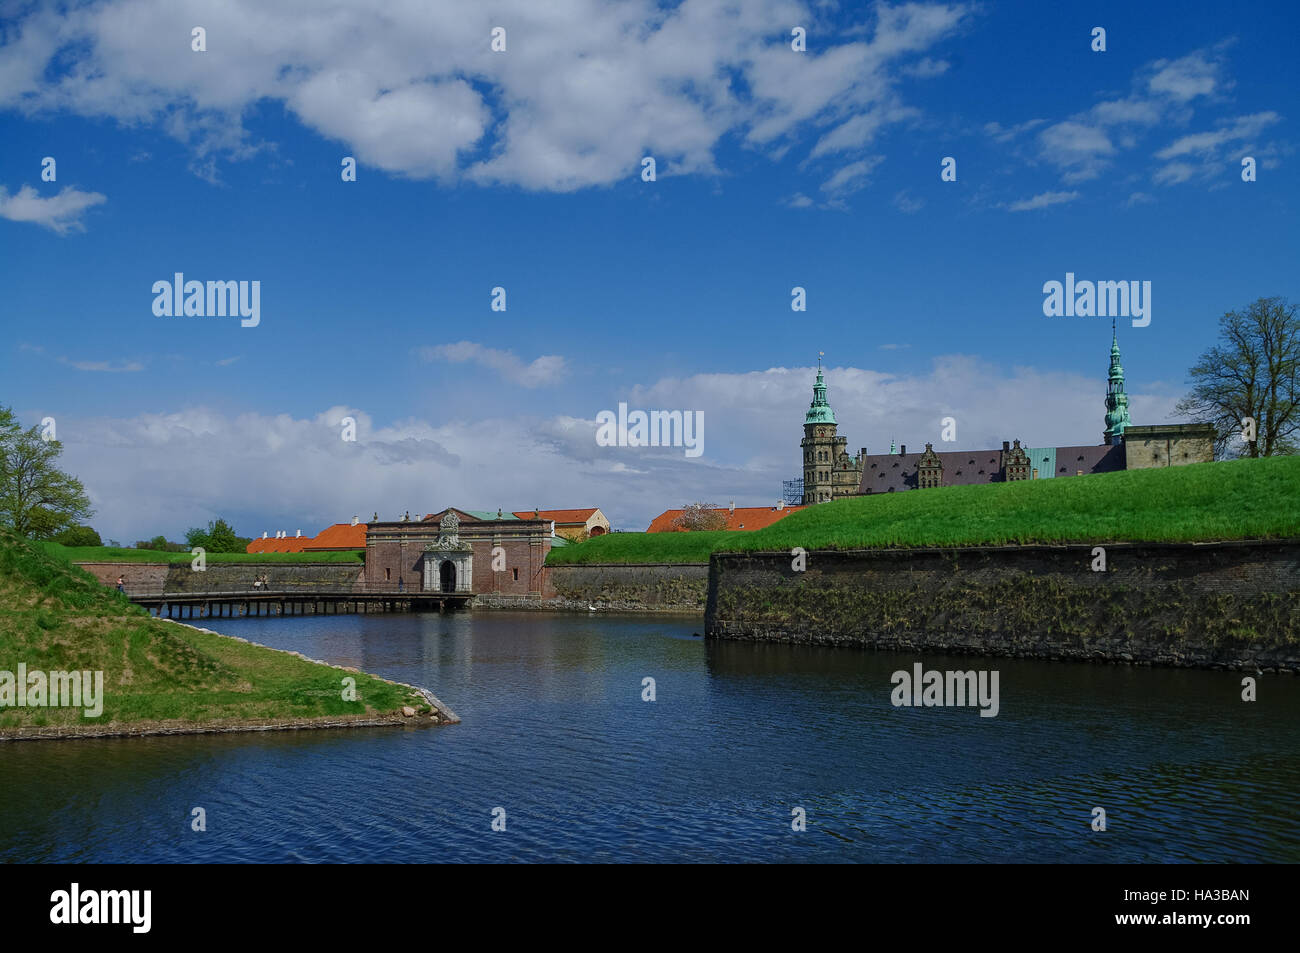 Moat and entrance gate to castle and fortress of Kronborg, home of Shakespeare's Hamlet. Denmark - Stock Image